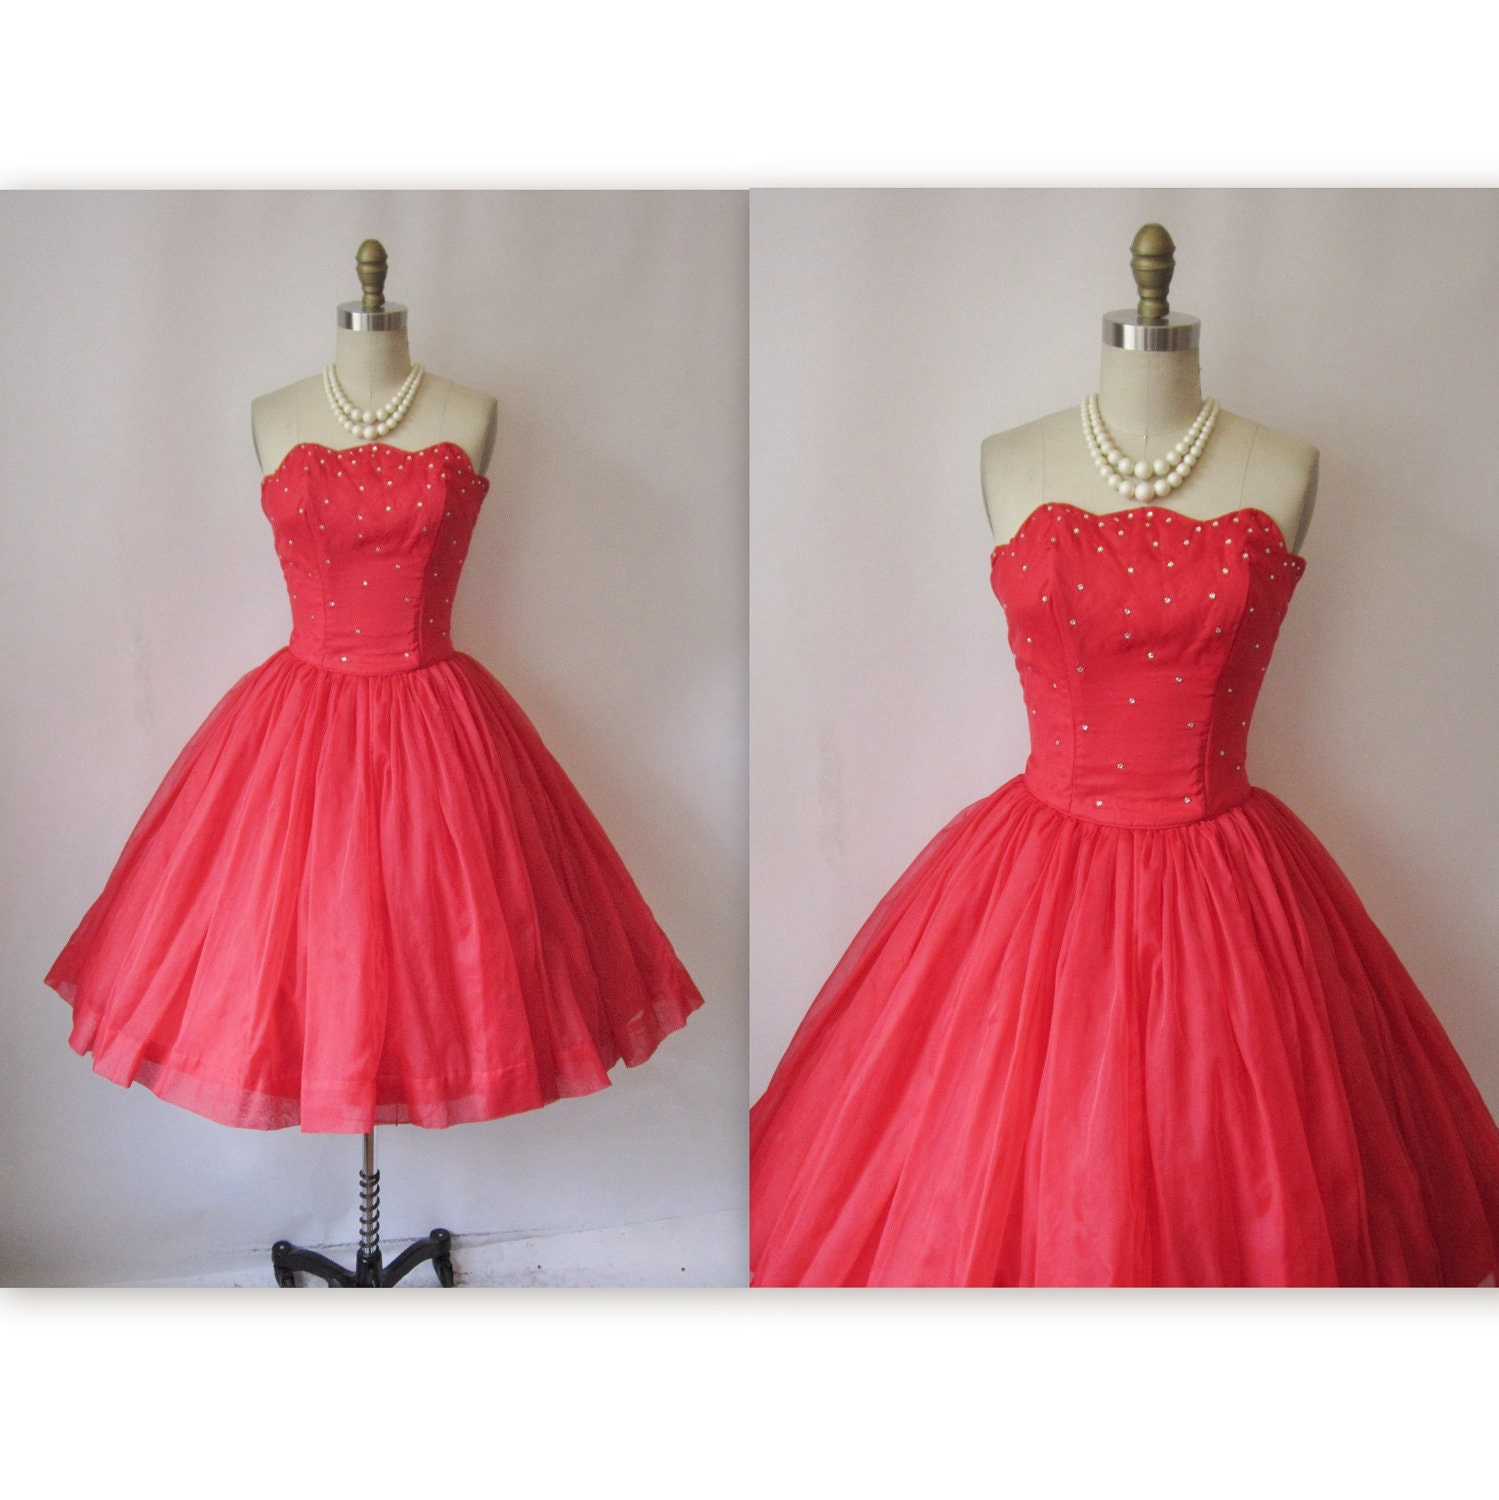 1950 s Red Dress Strapless Chiffon Prom by TheVintageStudio